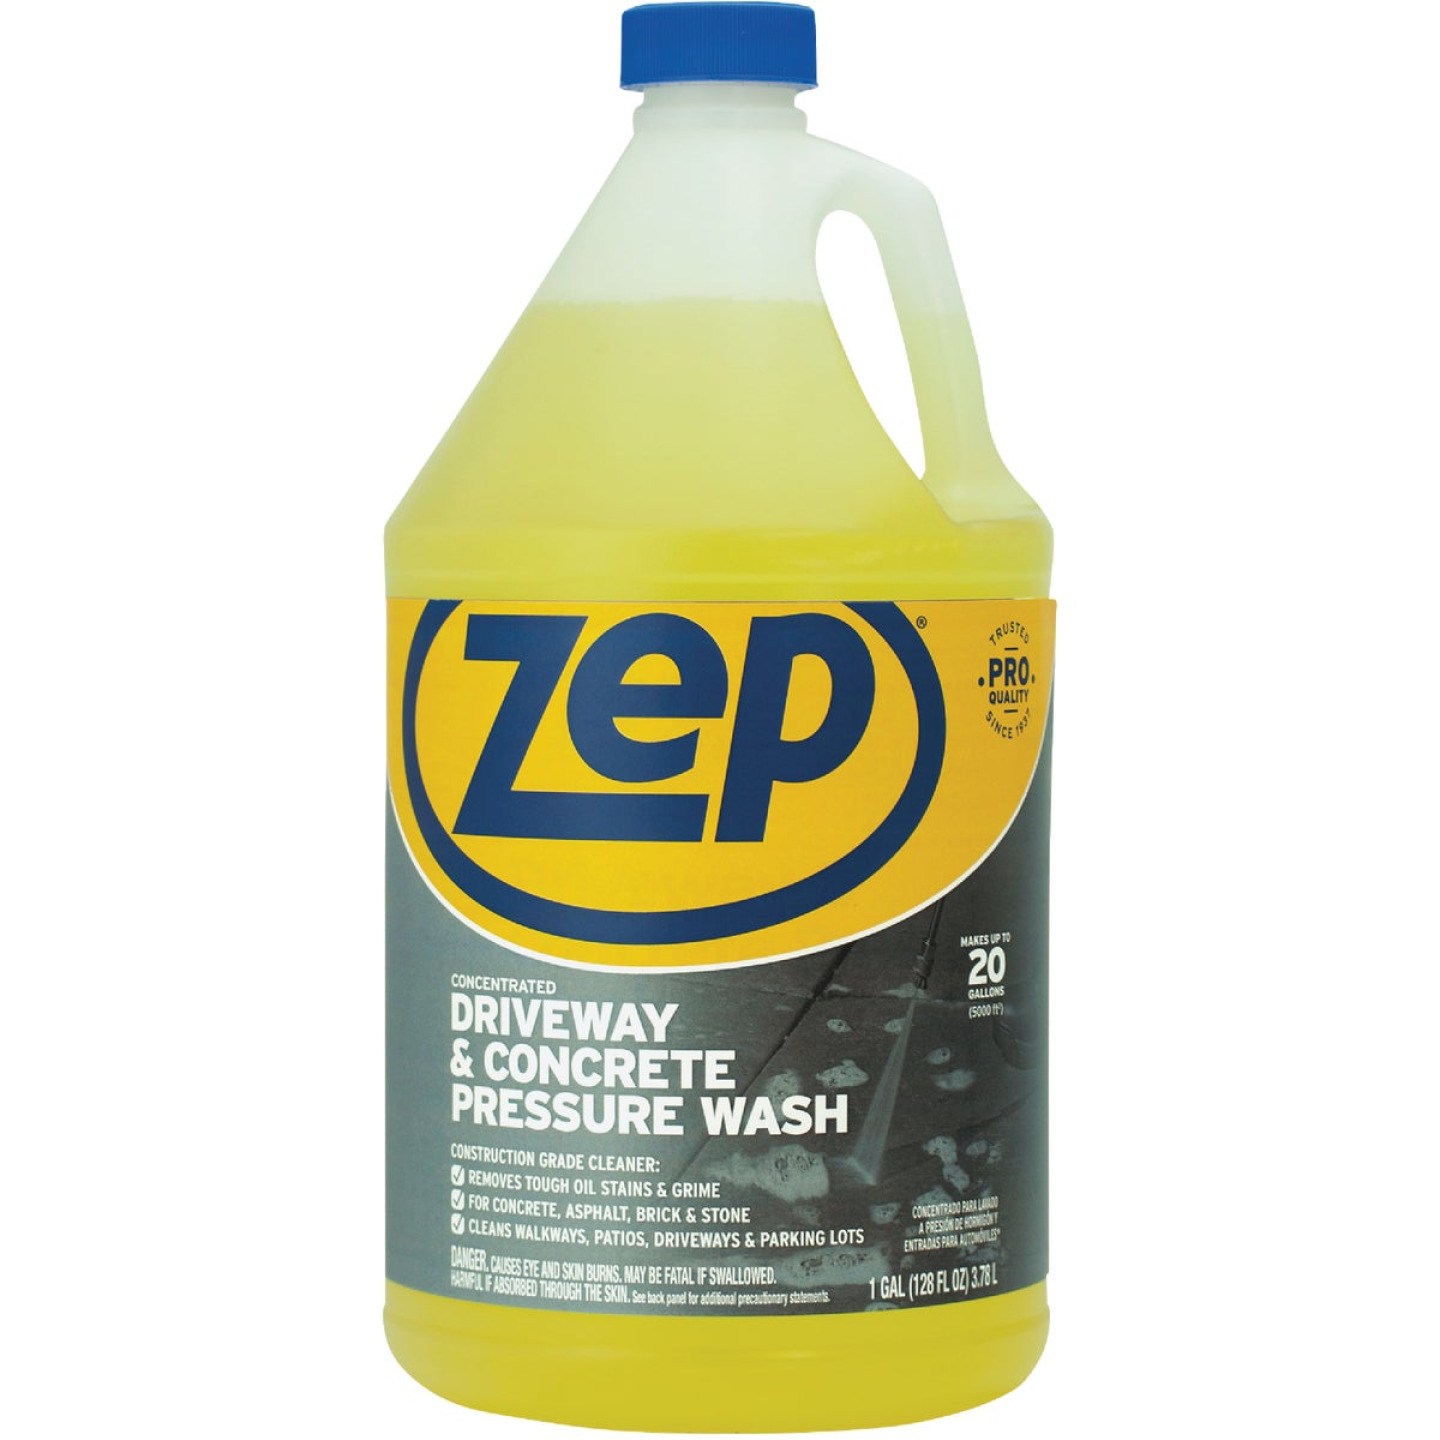 Krud Kutter 1 Gal. Concrete & Driveway Pressure Washer Concentrate Cleaner Image 1